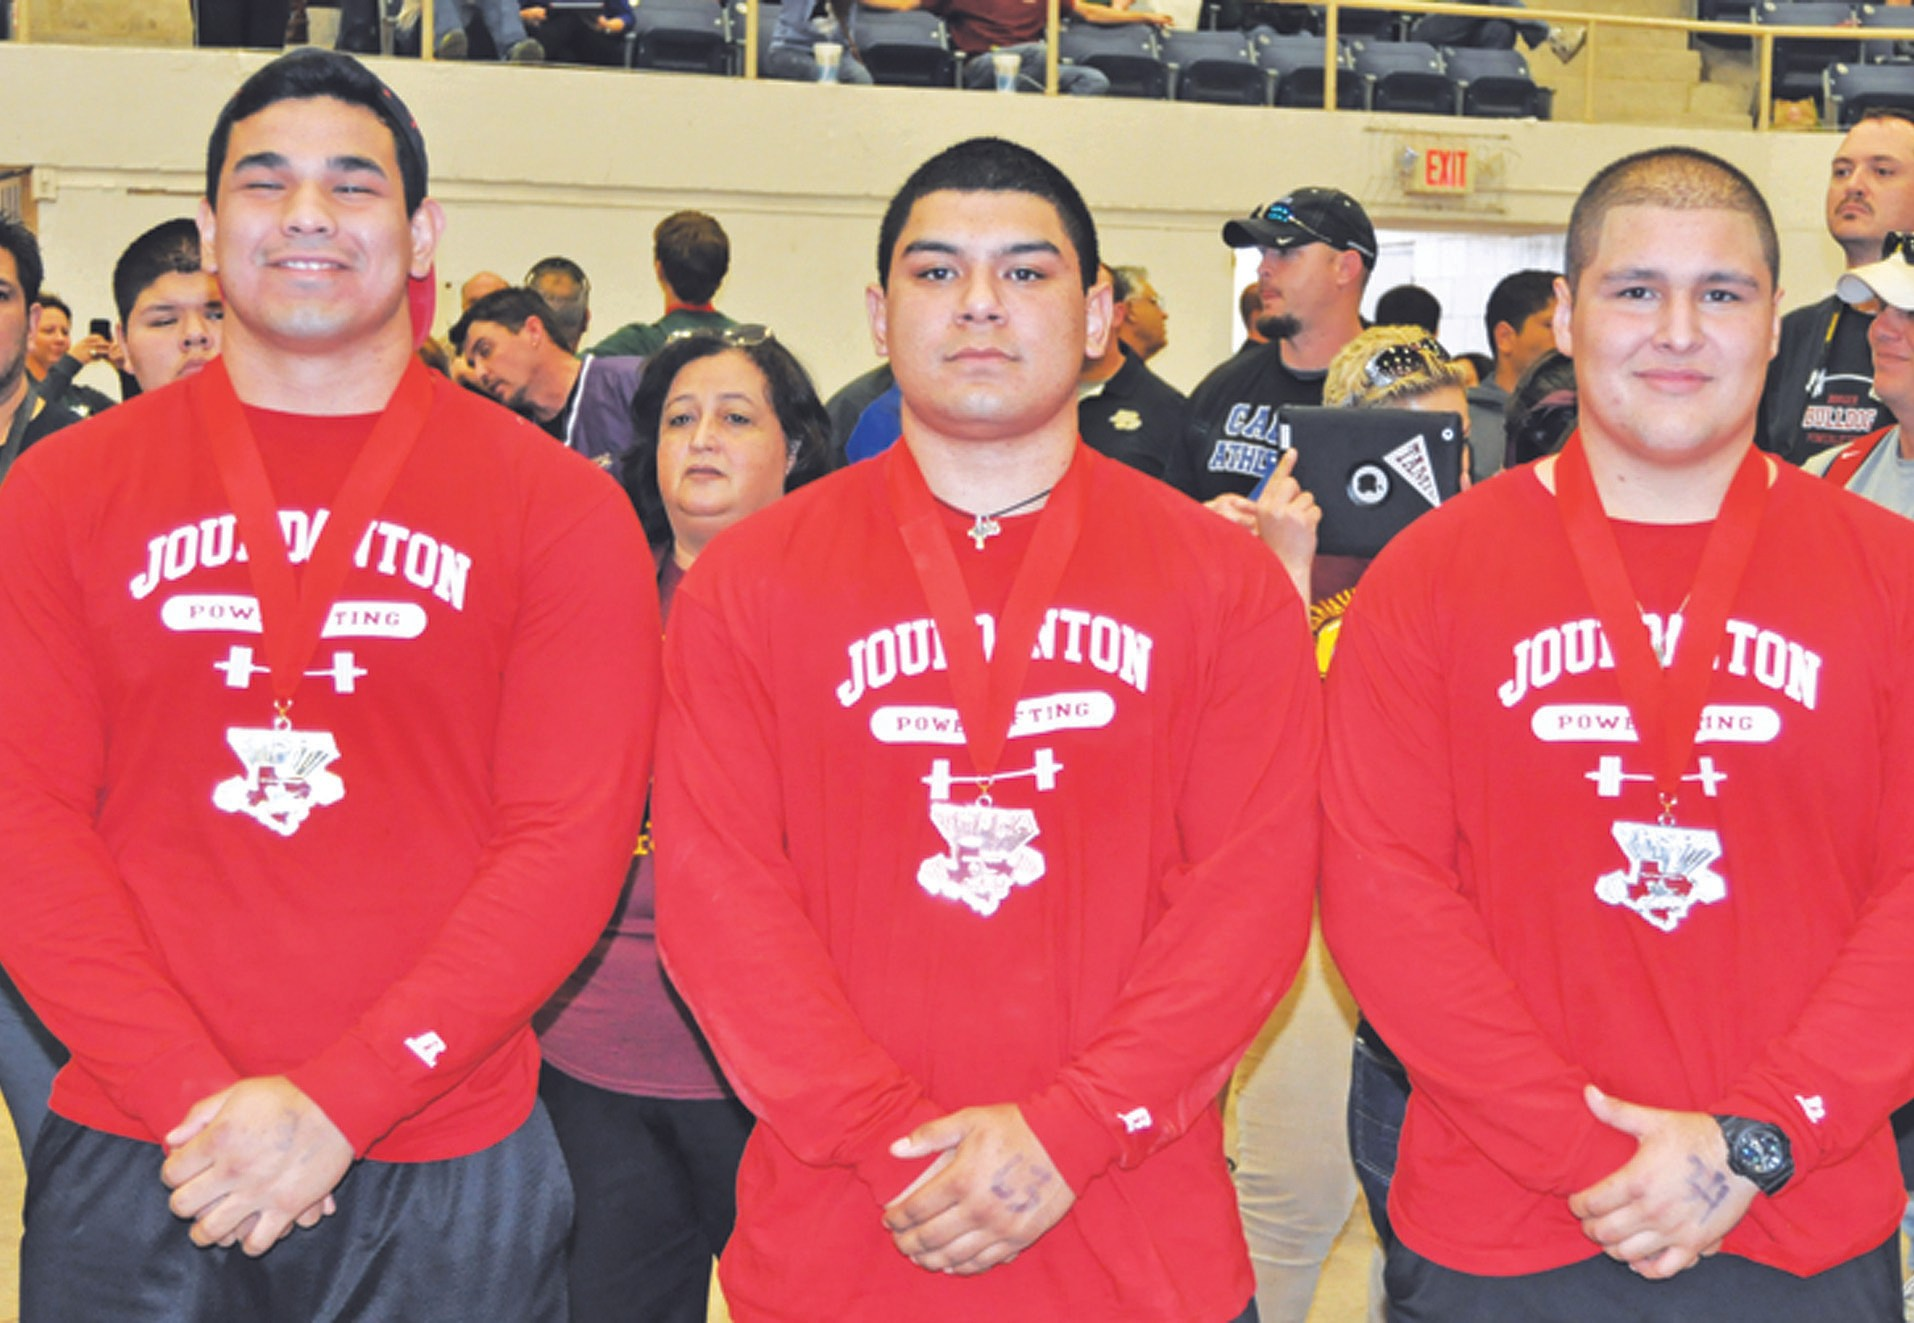 STATE CHAMPS: Jourdanton trio Enrique Lugo, Joe Estrada and Marc Boconegra pose for a photo after winning overall as a team in Division 3 at the state powerlifting meet in Abilene.